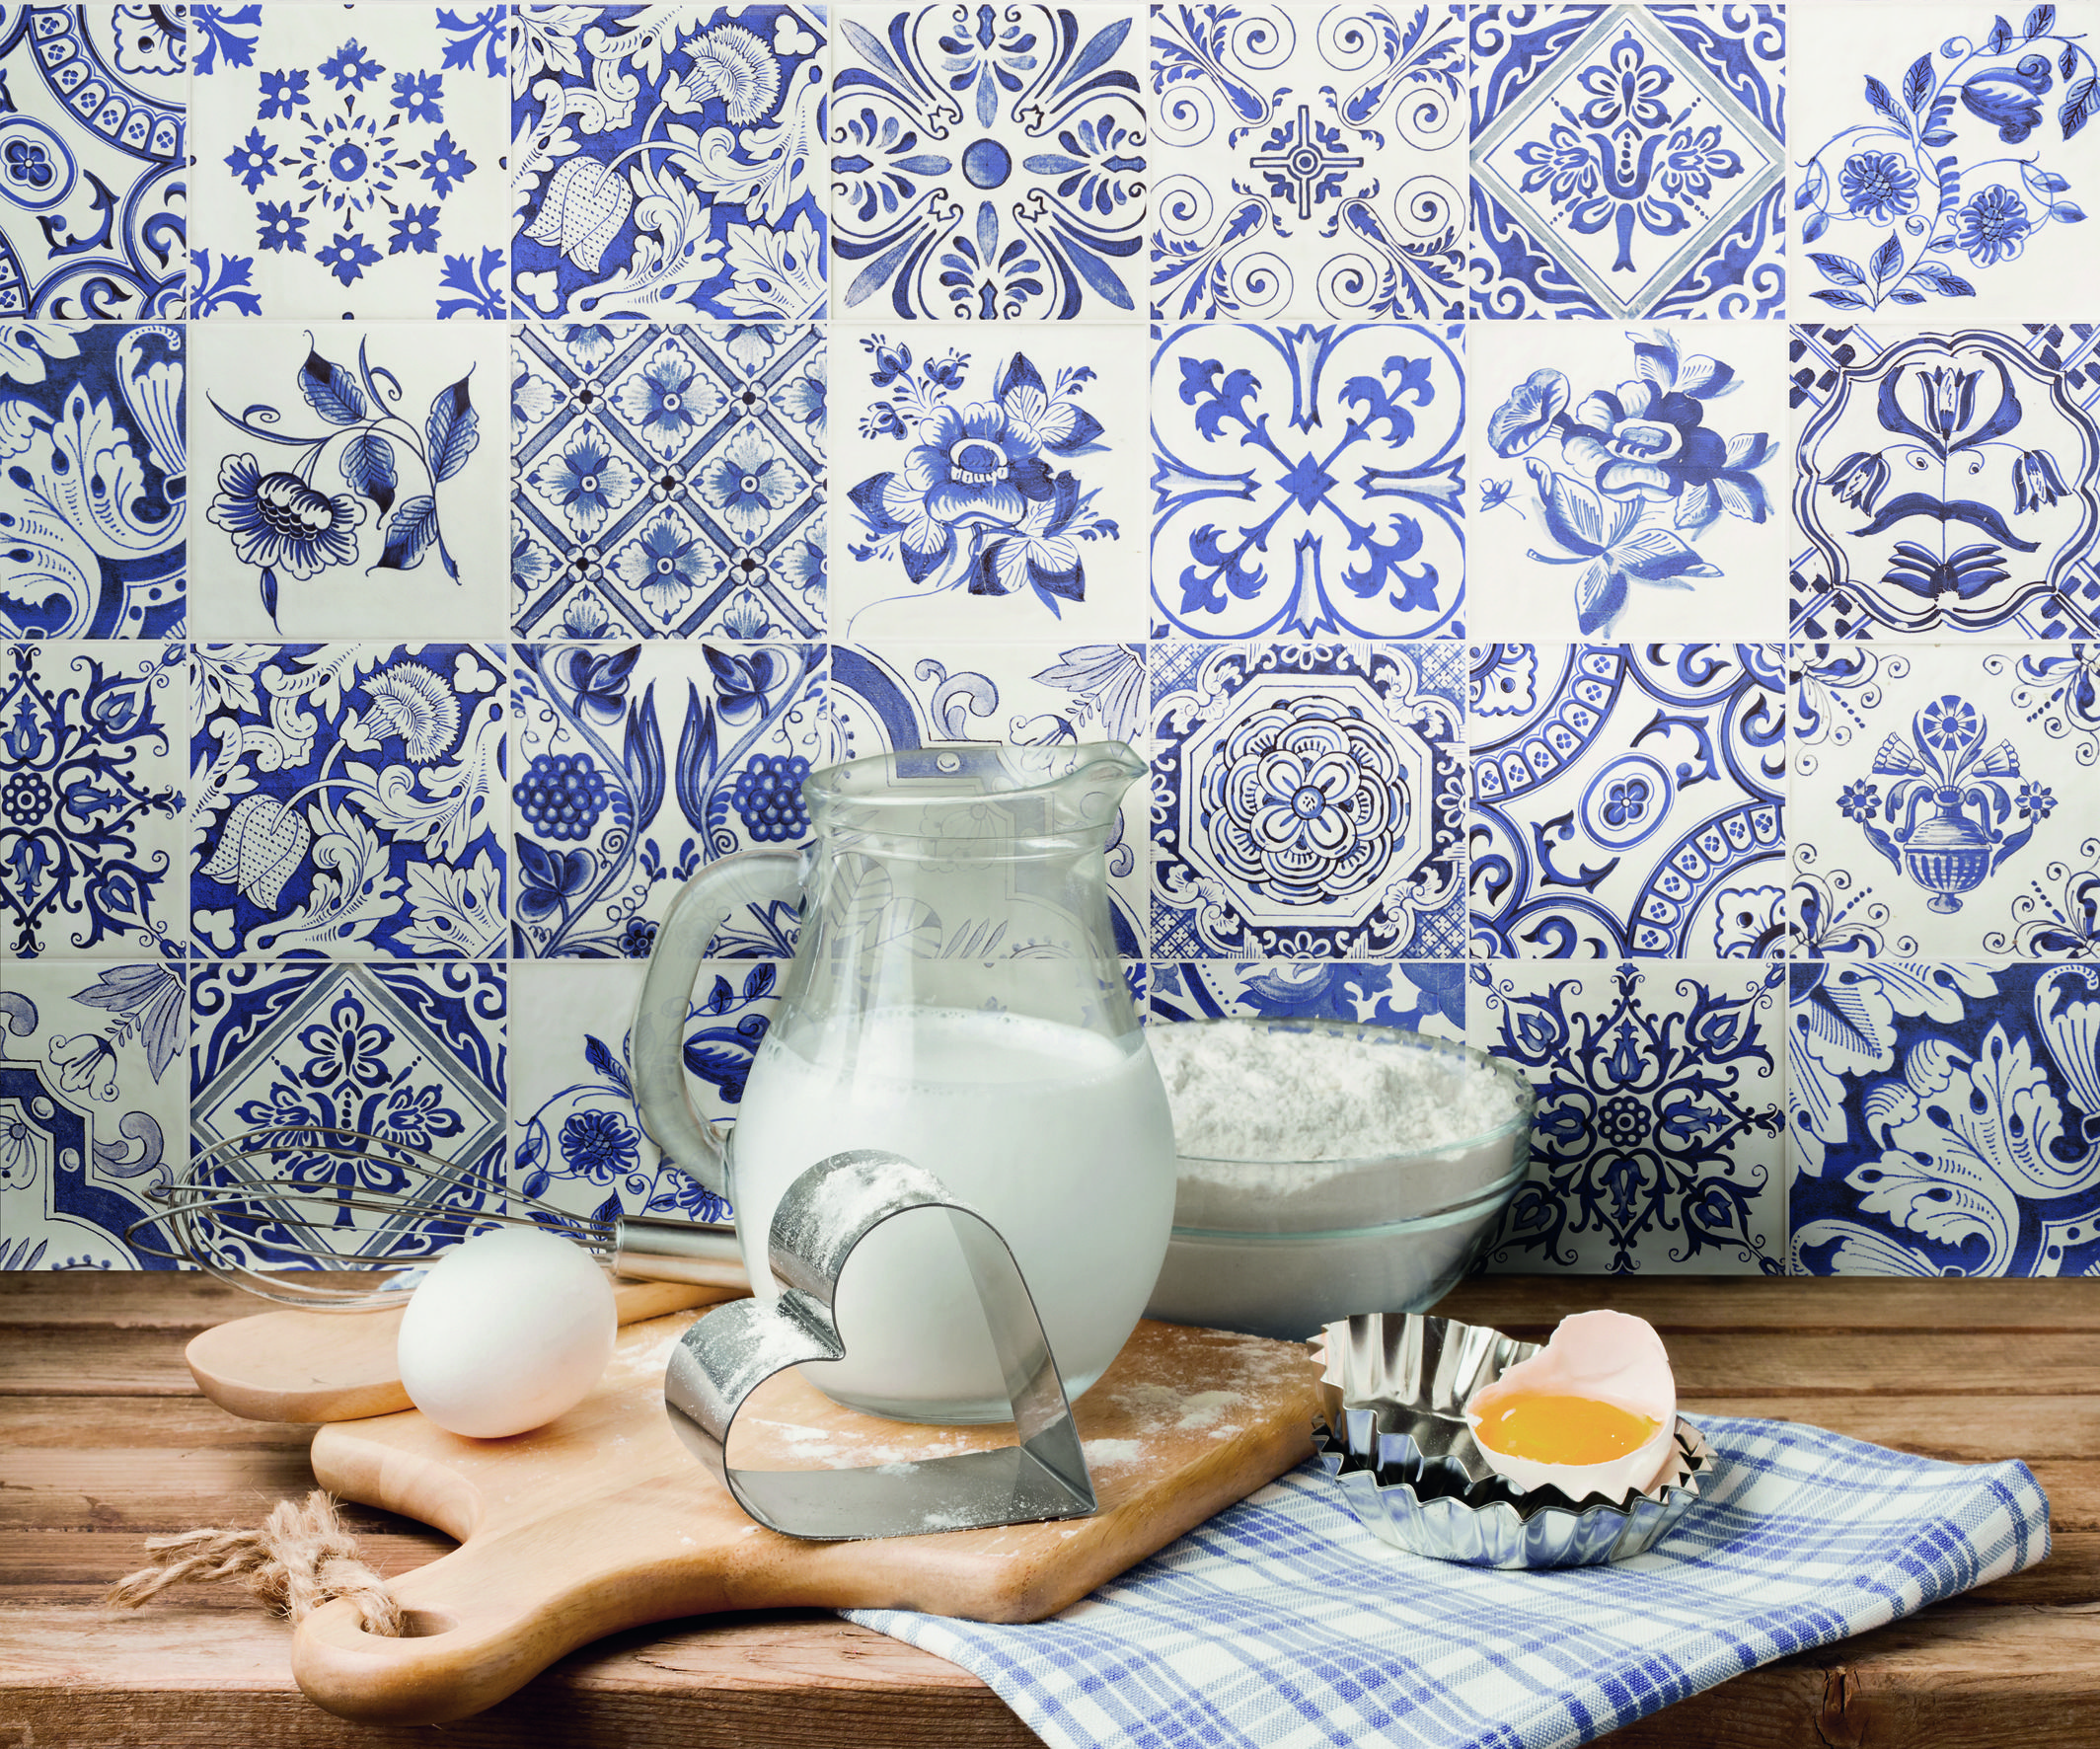 Tiles of spain | Pattern | Pinterest | Kitchens, Splashback tiles ...